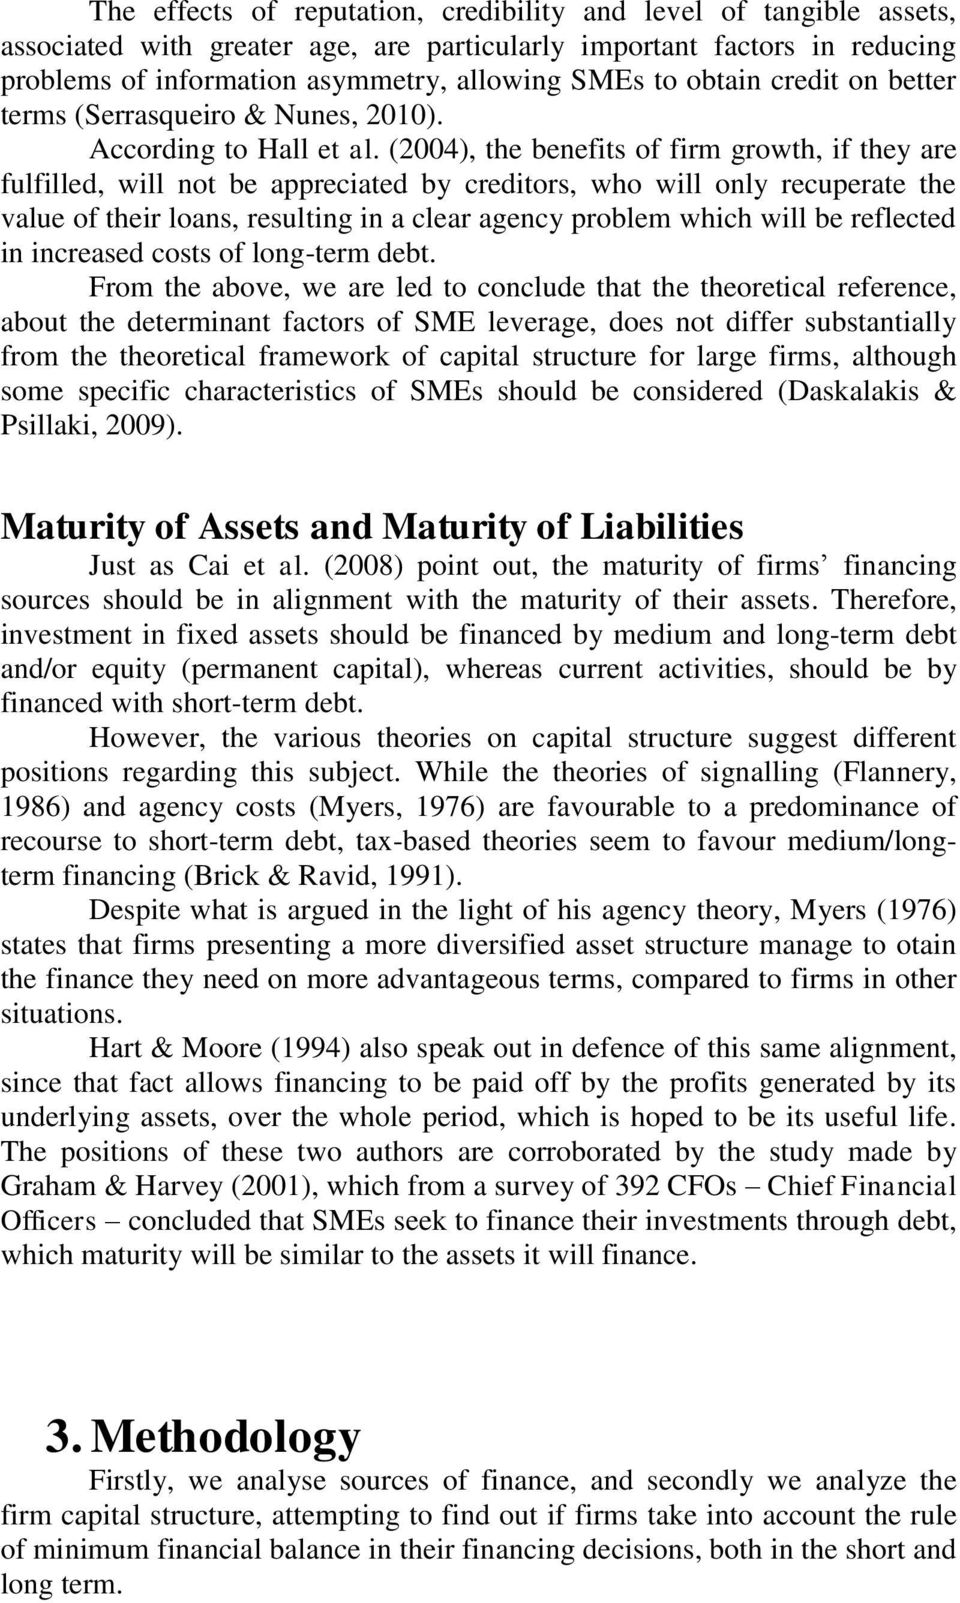 (2004), the benefits of firm growth, if they are fulfilled, will not be appreciated by creditors, who will only recuperate the value of their loans, resulting in a clear agency problem which will be